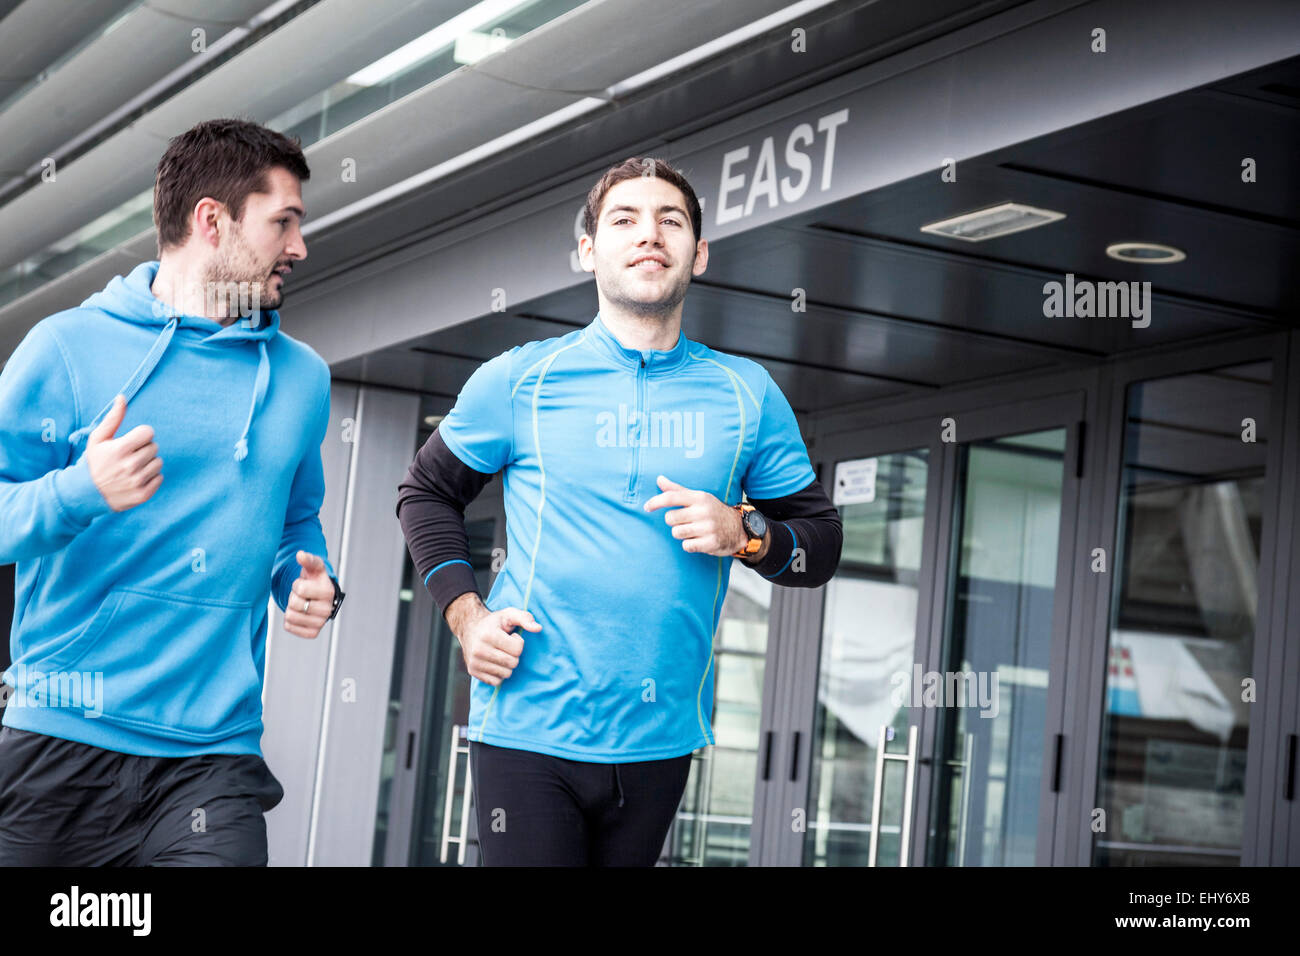 Male runners jogging in city side by side - Stock Image